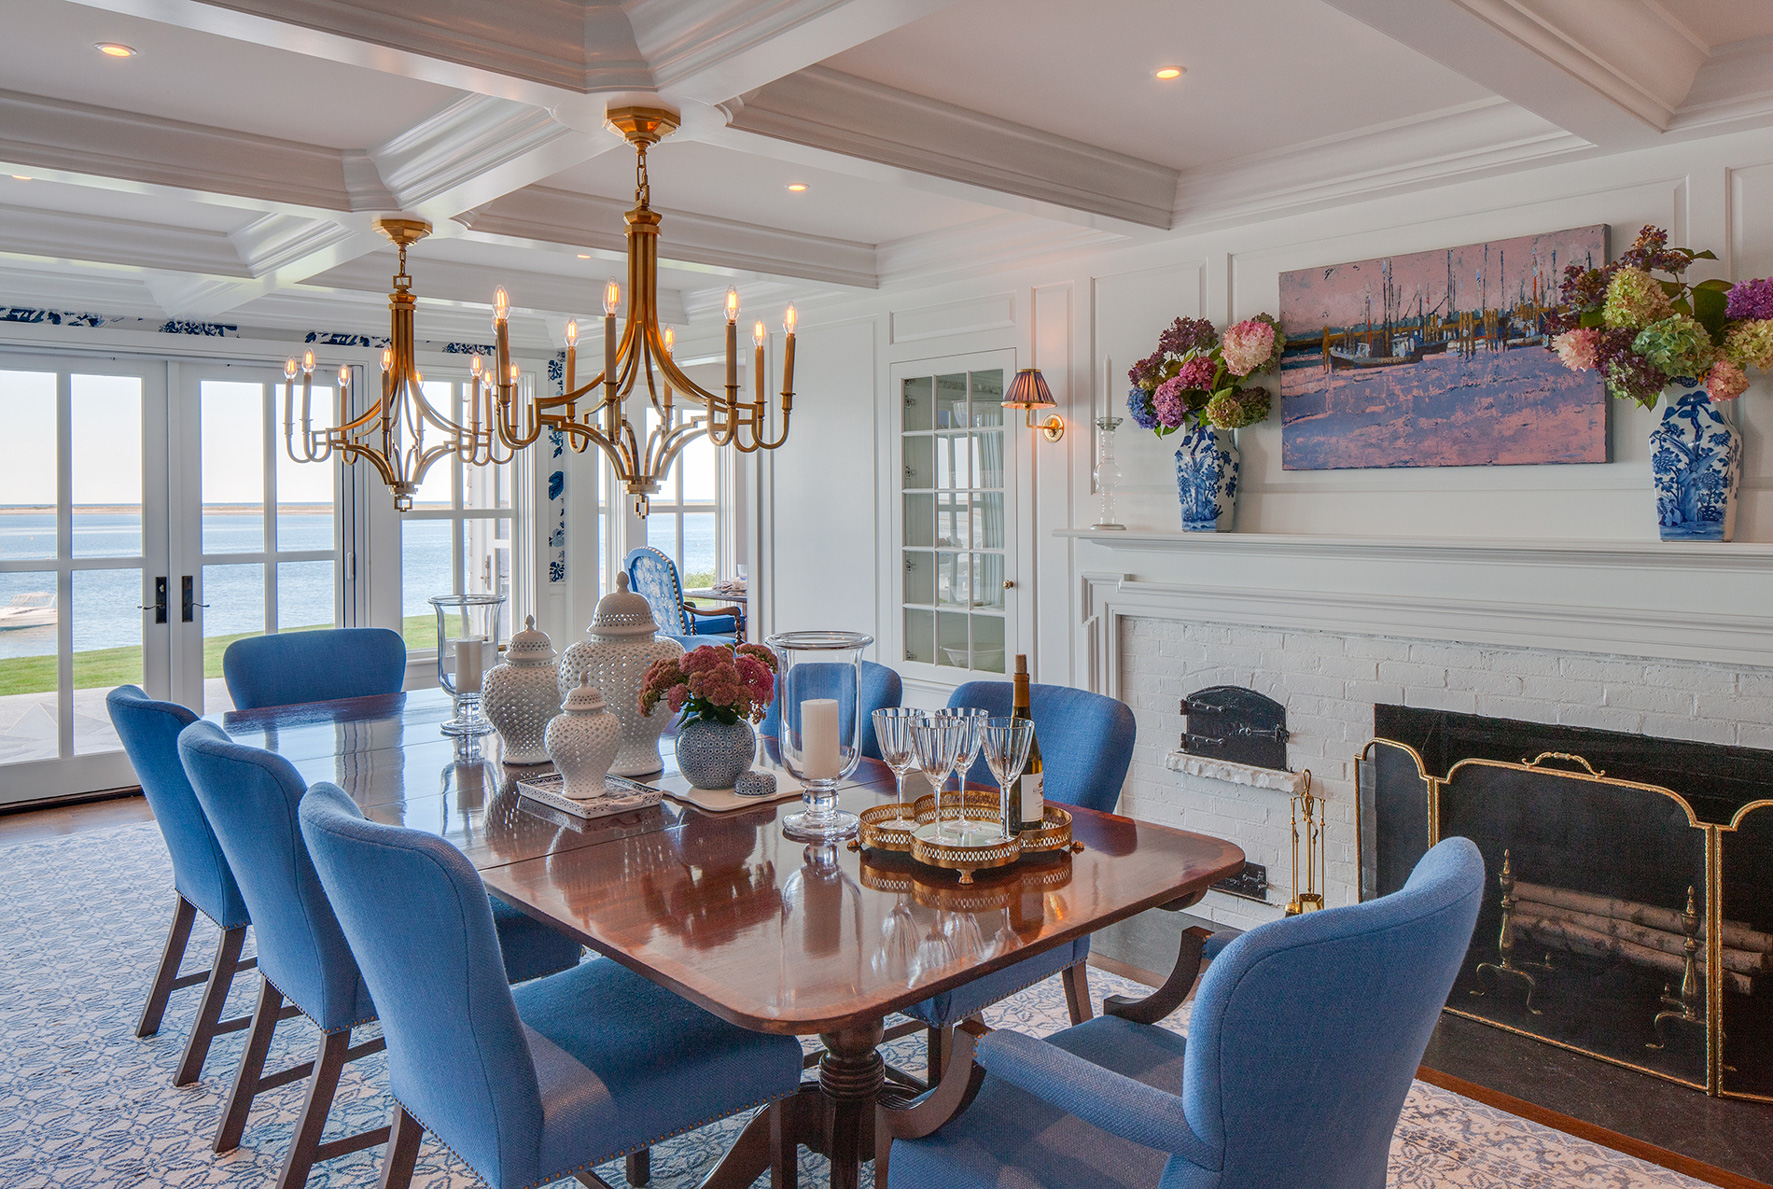 Dining area over looking the water on Cape Cod renovated by Polhemus Savery DaSilva Architects Builders